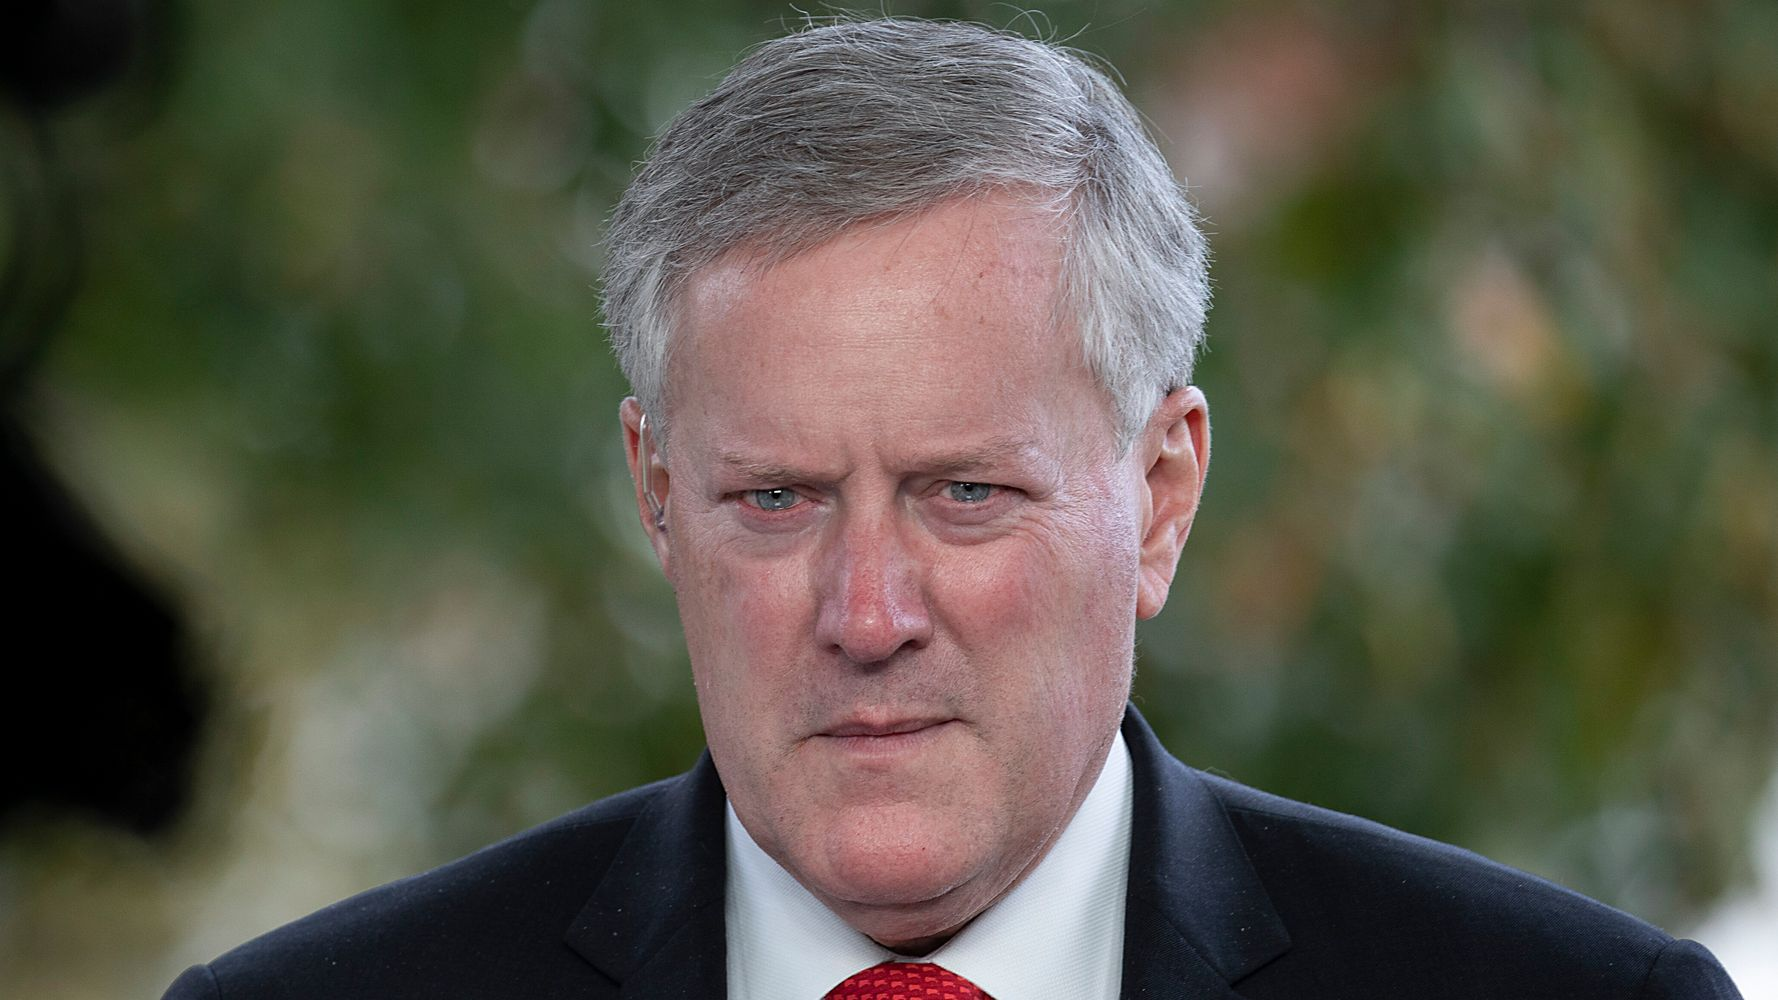 Mark Meadows Accused Of Blowing Campaign Cash On Clubs, Cupcakes And Trump Hotel